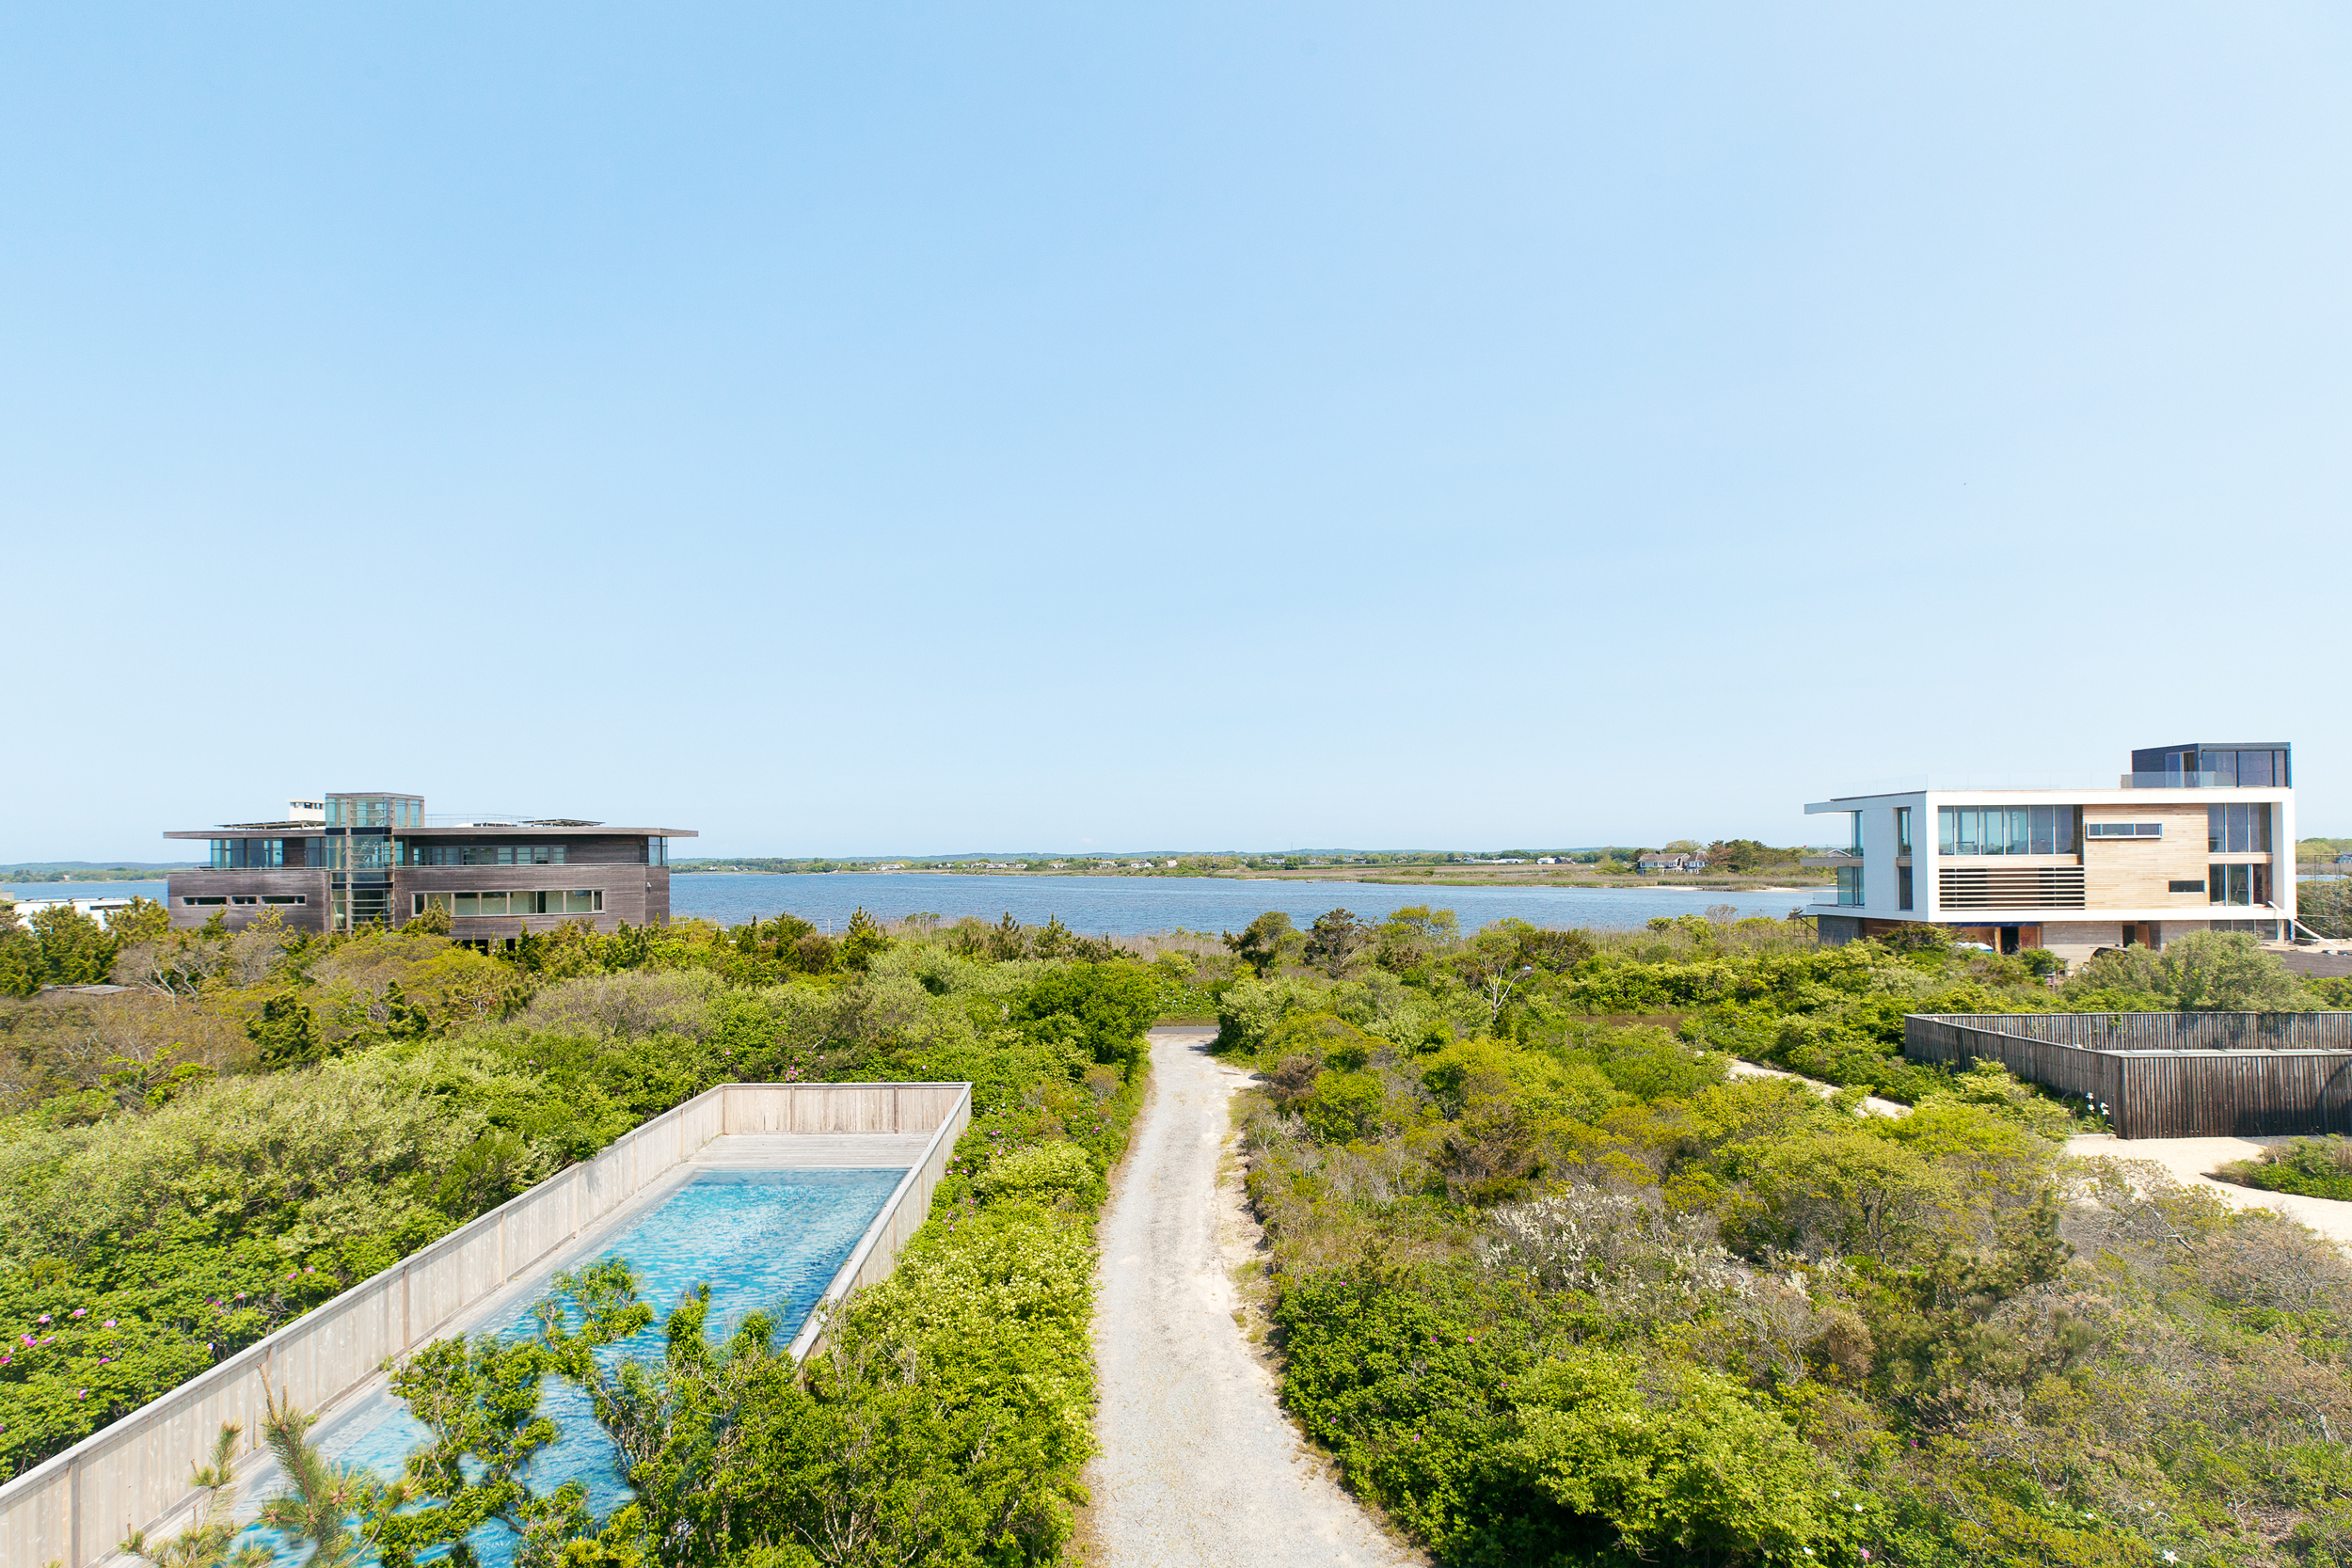 139 Dune Road, Water Mill. JAIME LOPEZ FOR SOTHEBY'S INTERNATIONAL REALTY